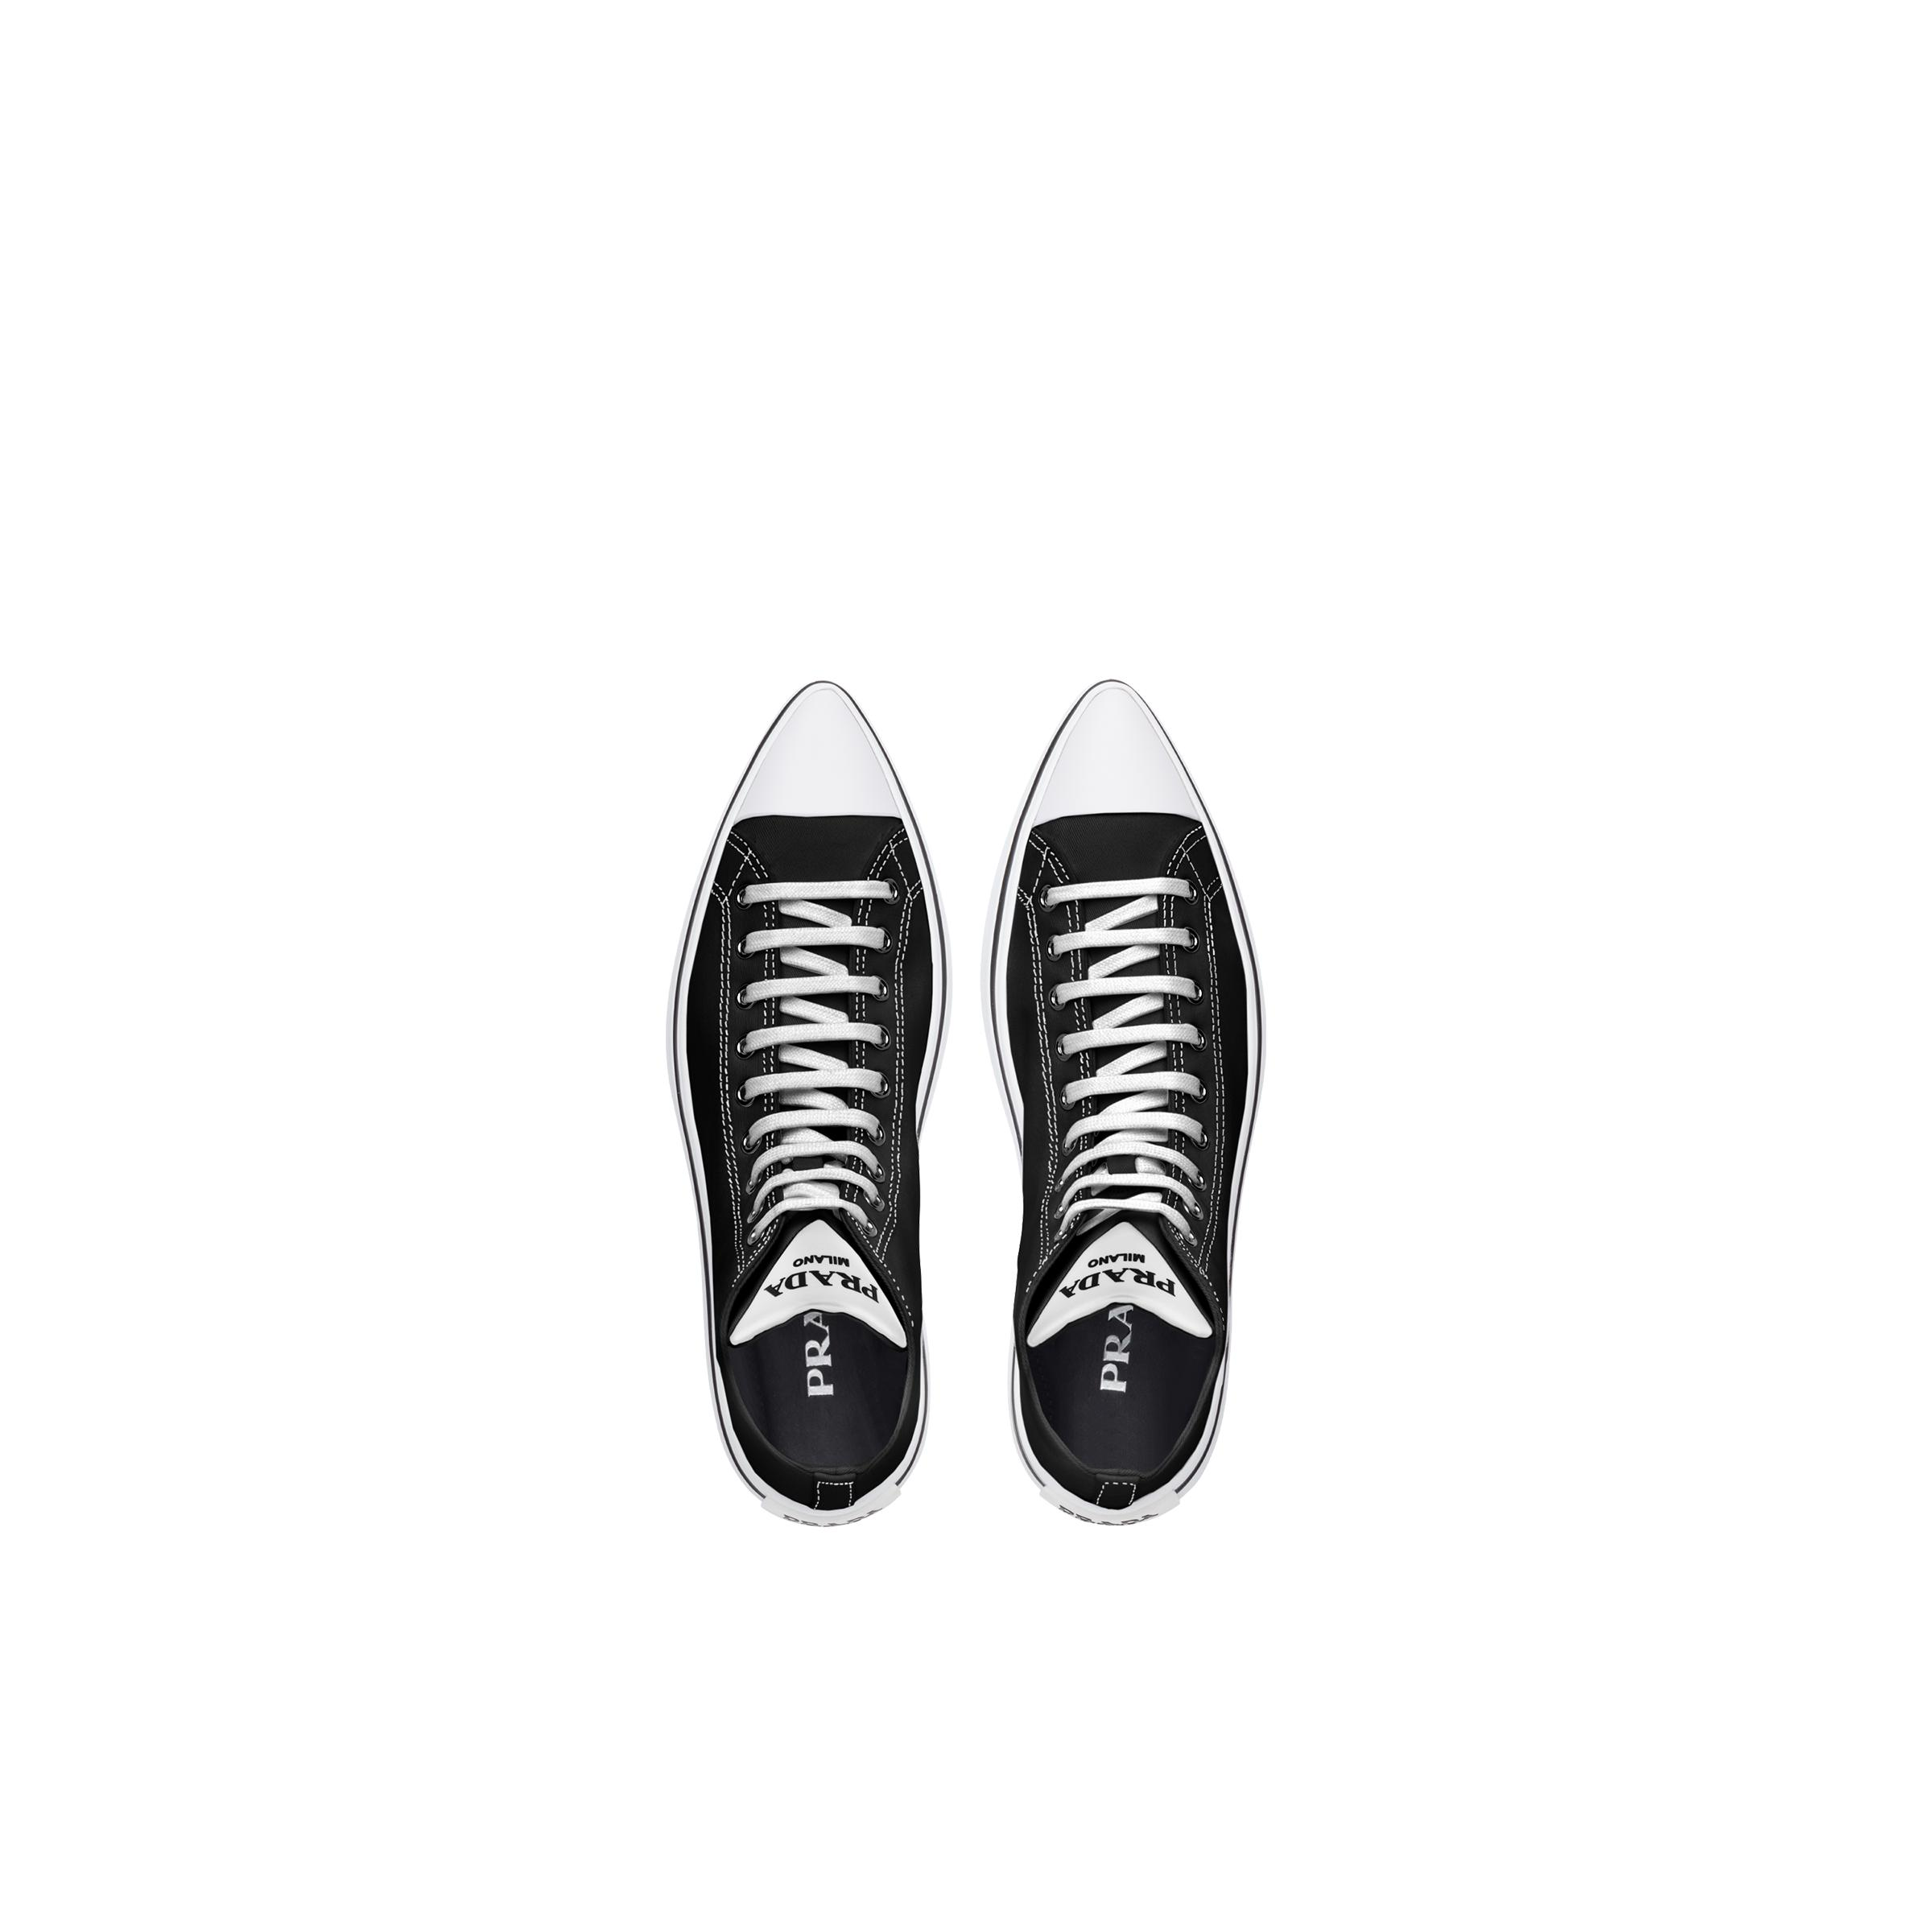 Synthesis High-top Sneakers Women Black 1